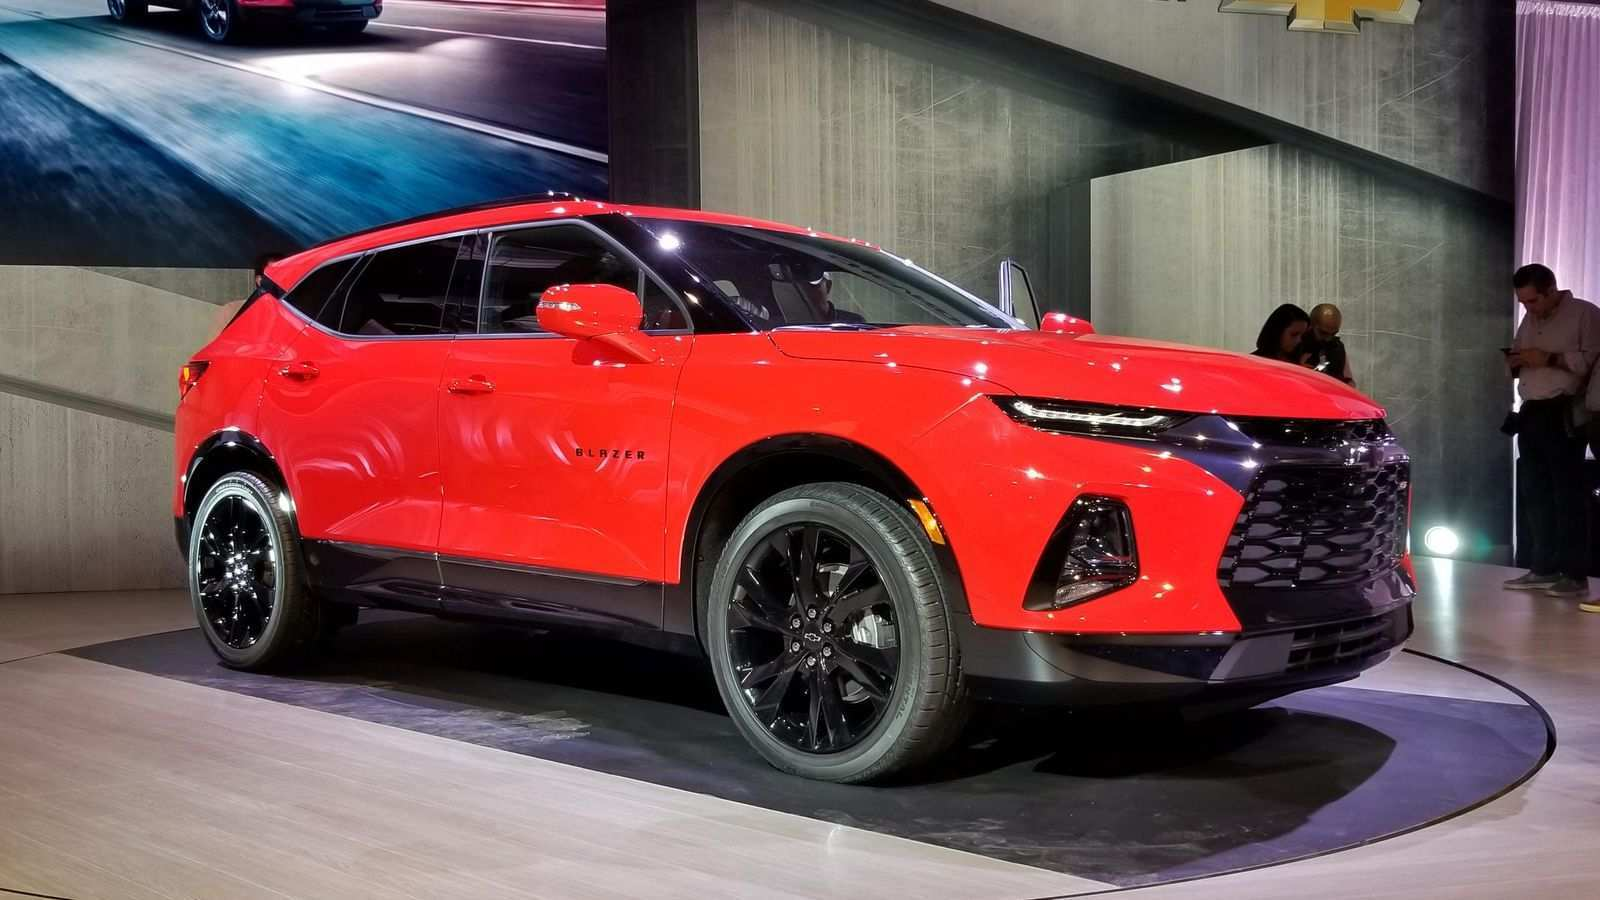 21 All New 2019 Chevrolet Blazer Release Date Specs for 2019 Chevrolet Blazer Release Date